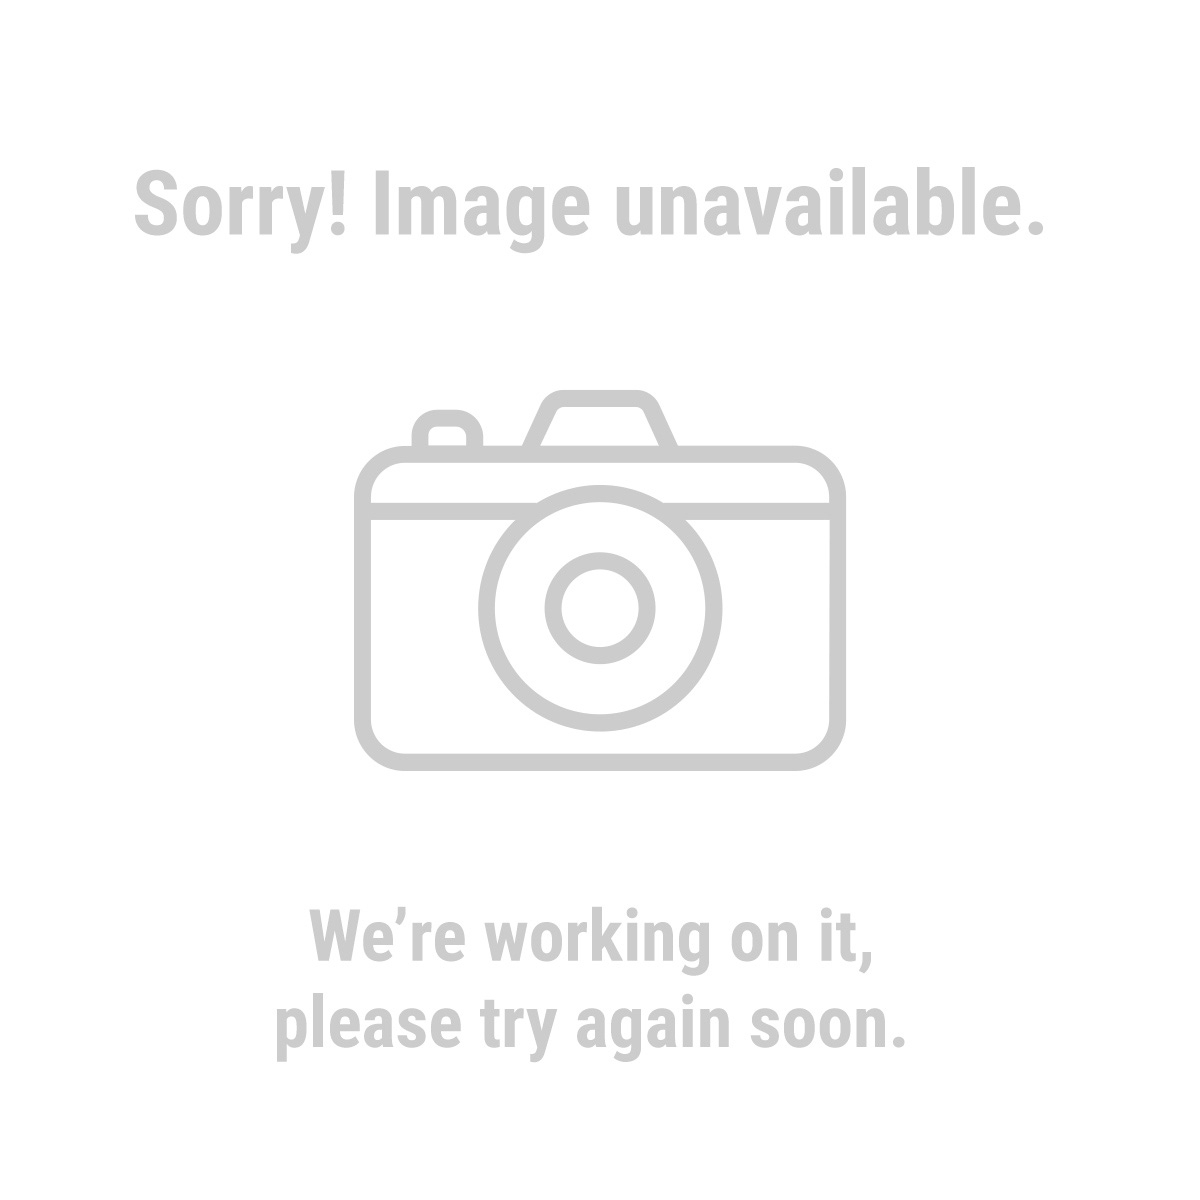 5/8 Horsepower Airless Paint Sprayer Kit